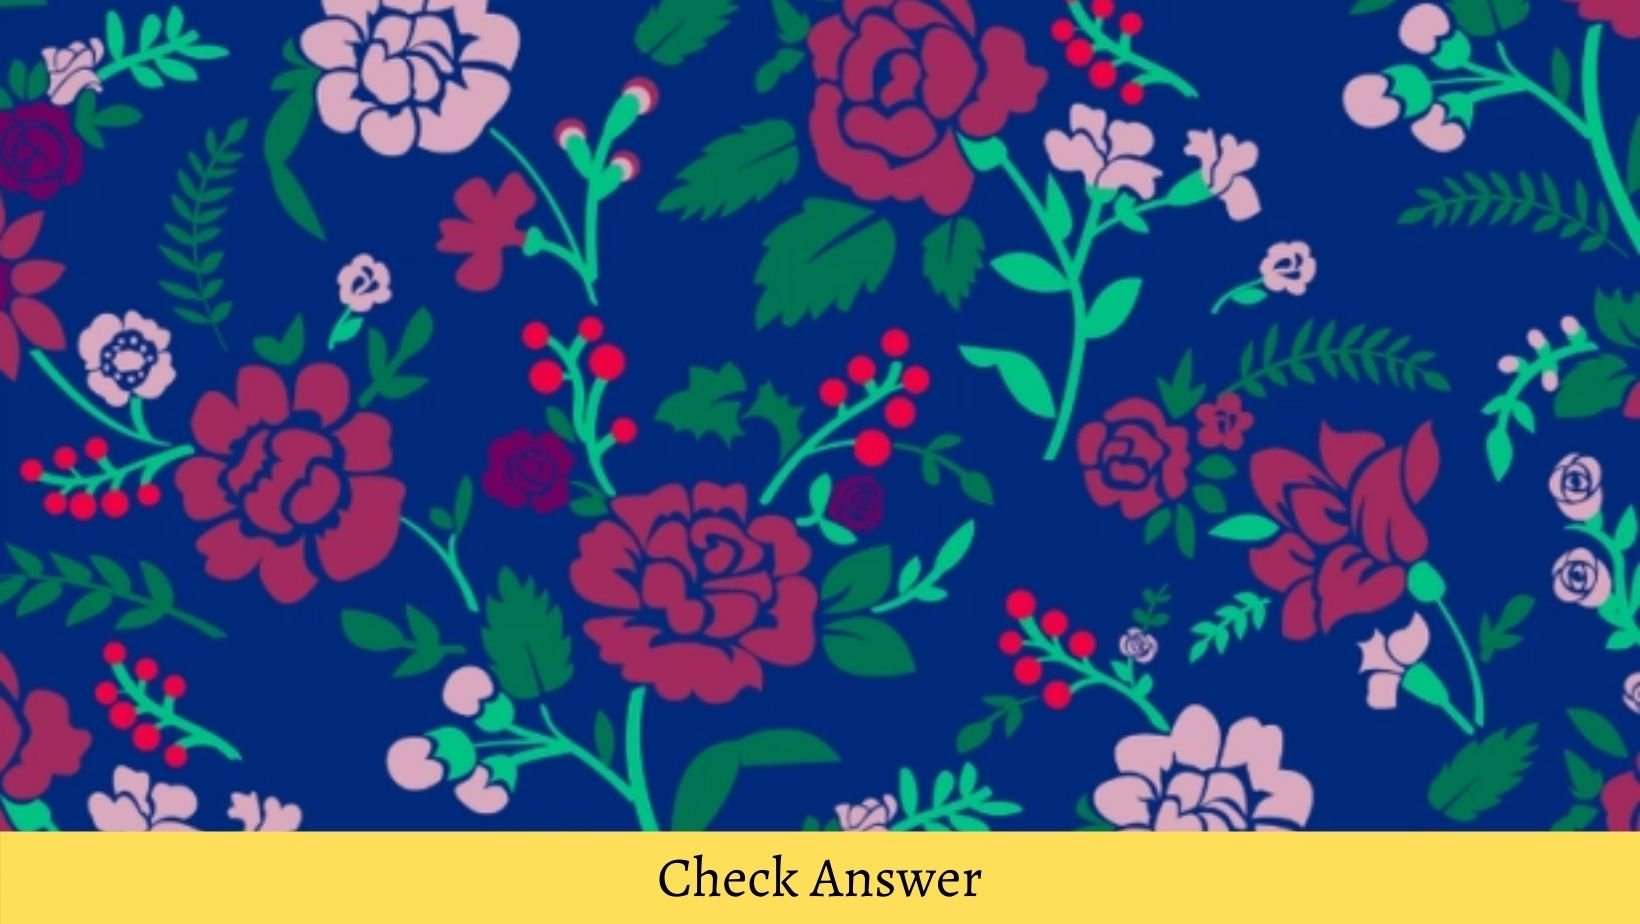 cover 15.jpg?resize=1200,630 - Can You Spot The Hidden Crayon In This Floral Image?